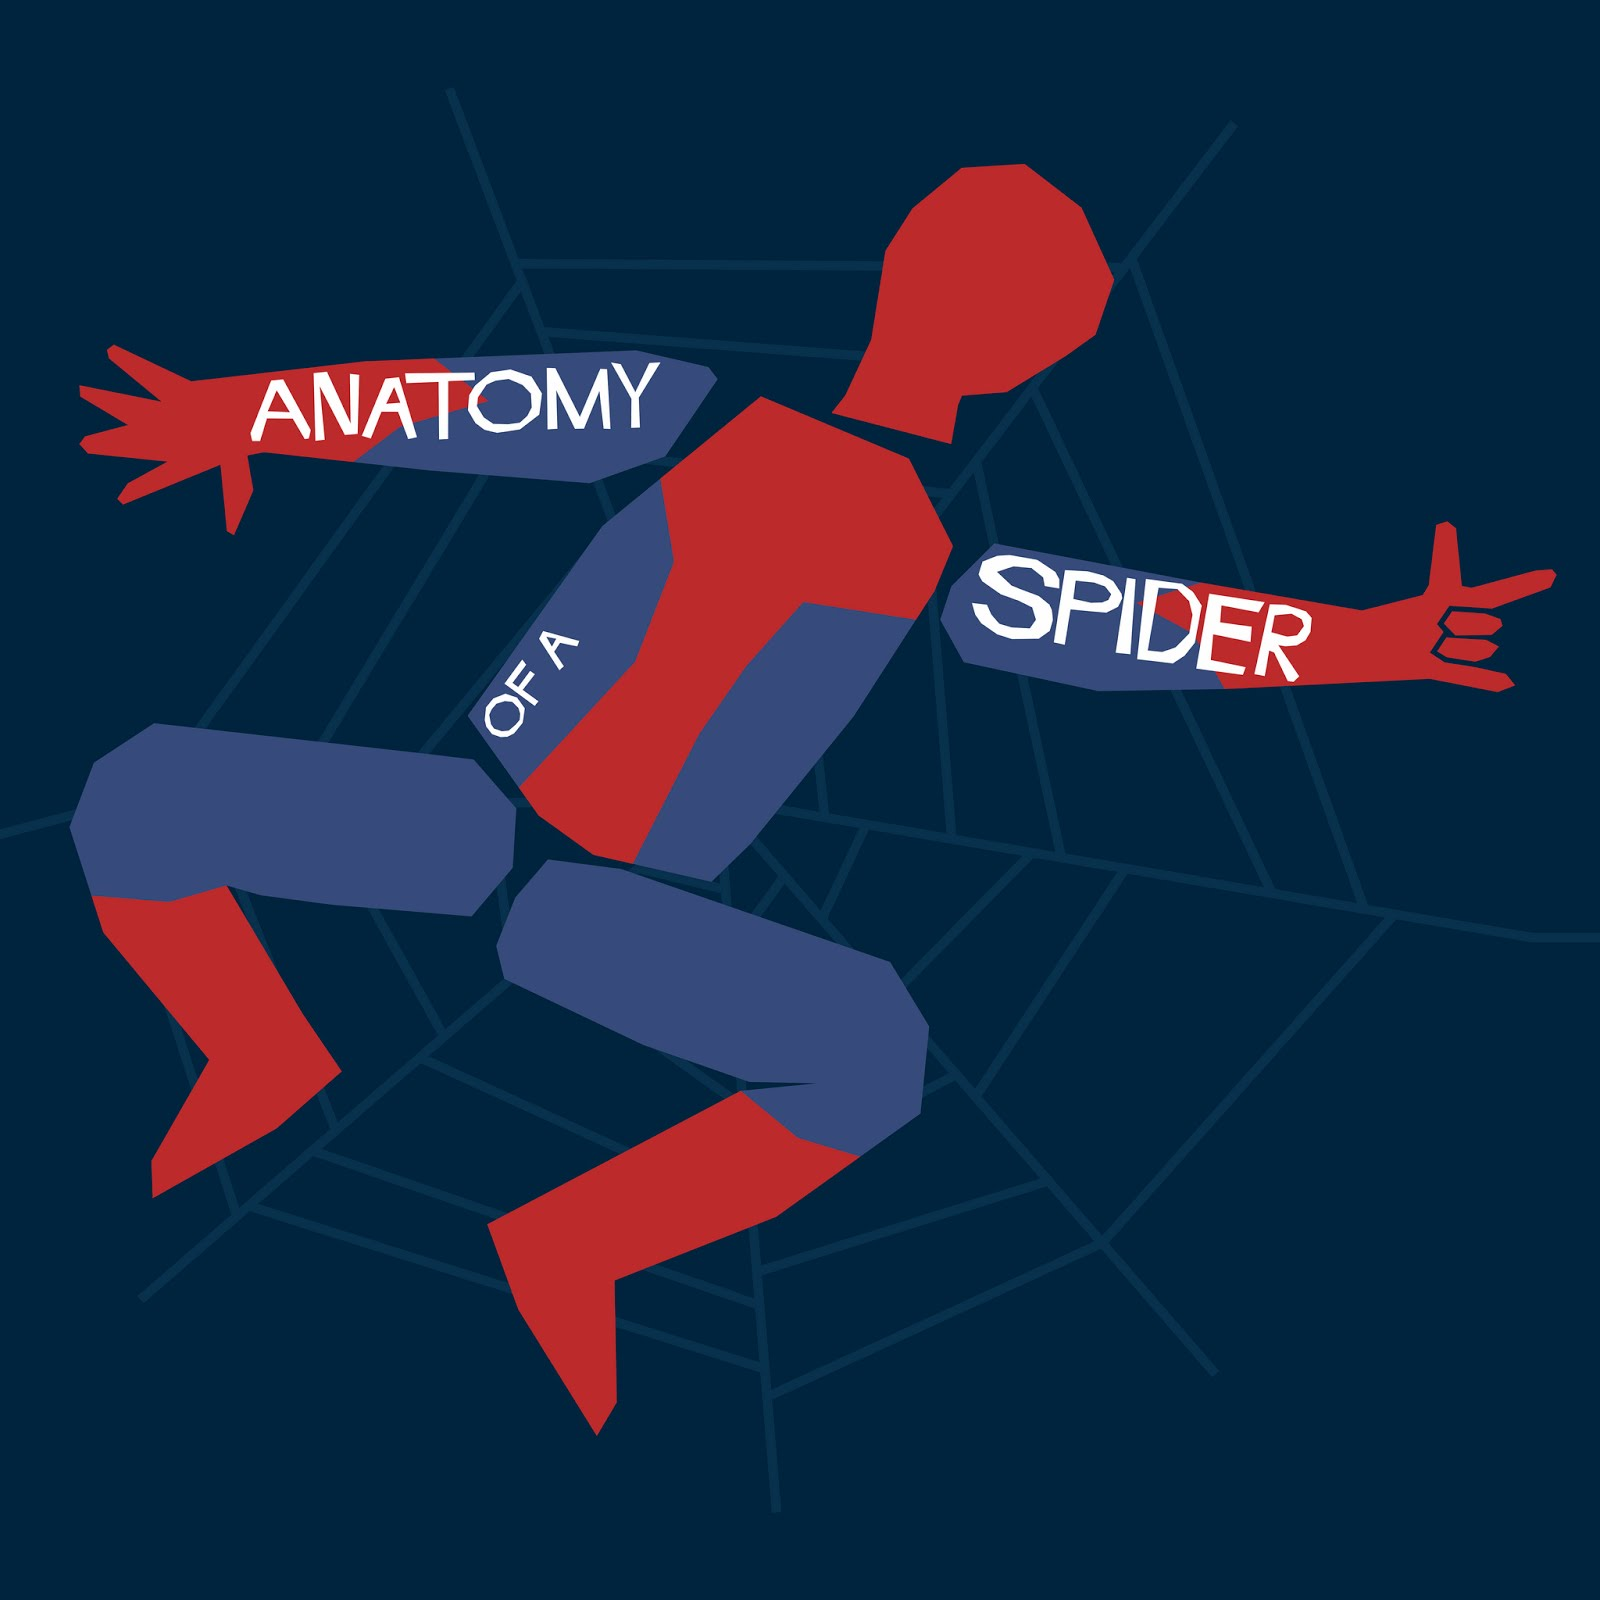 spider_anatomy.jpg